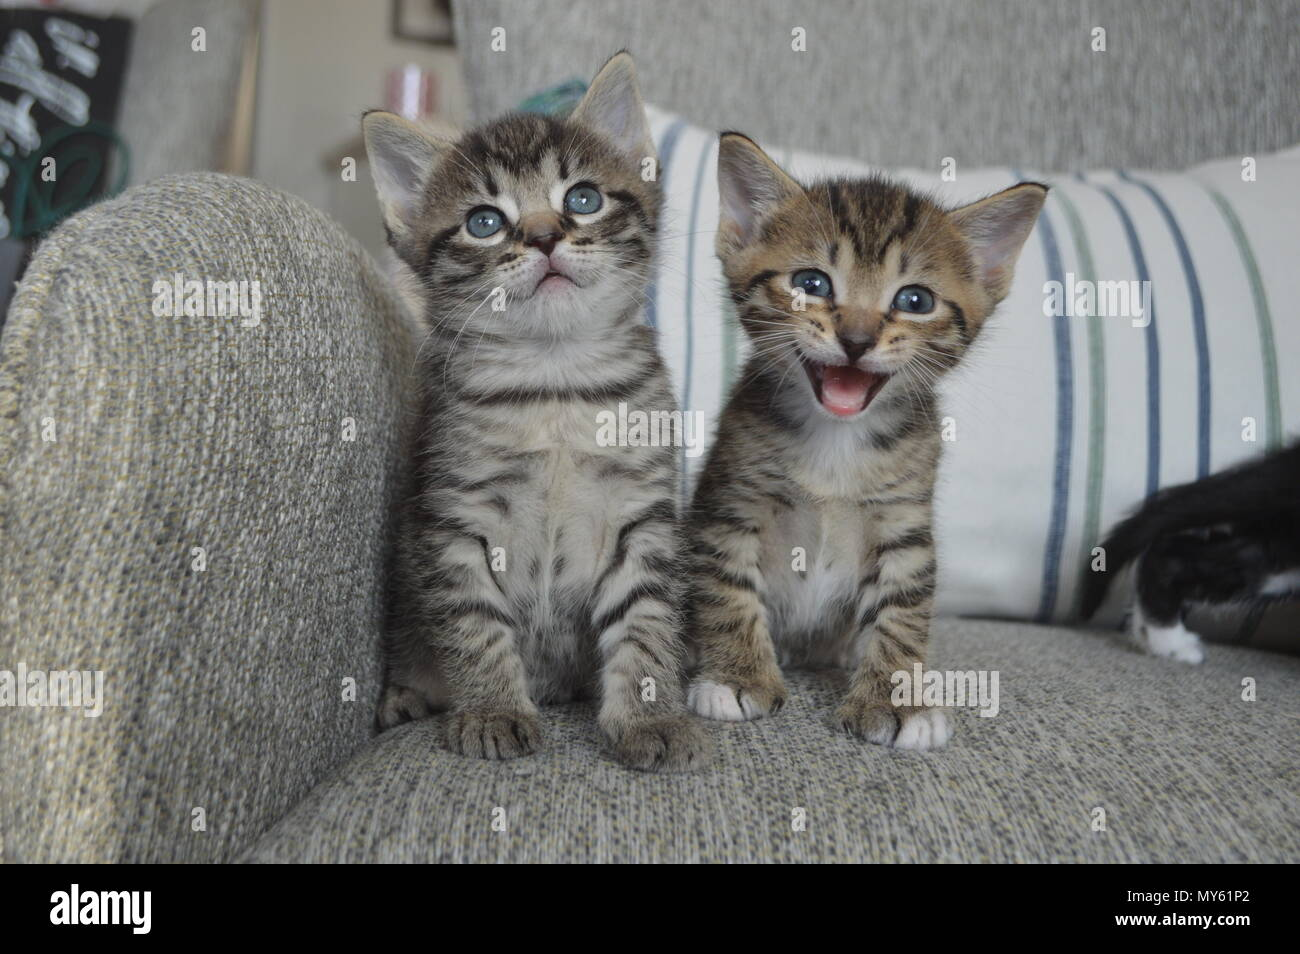 Two tabby kittens, one kitten meowing - Stock Image